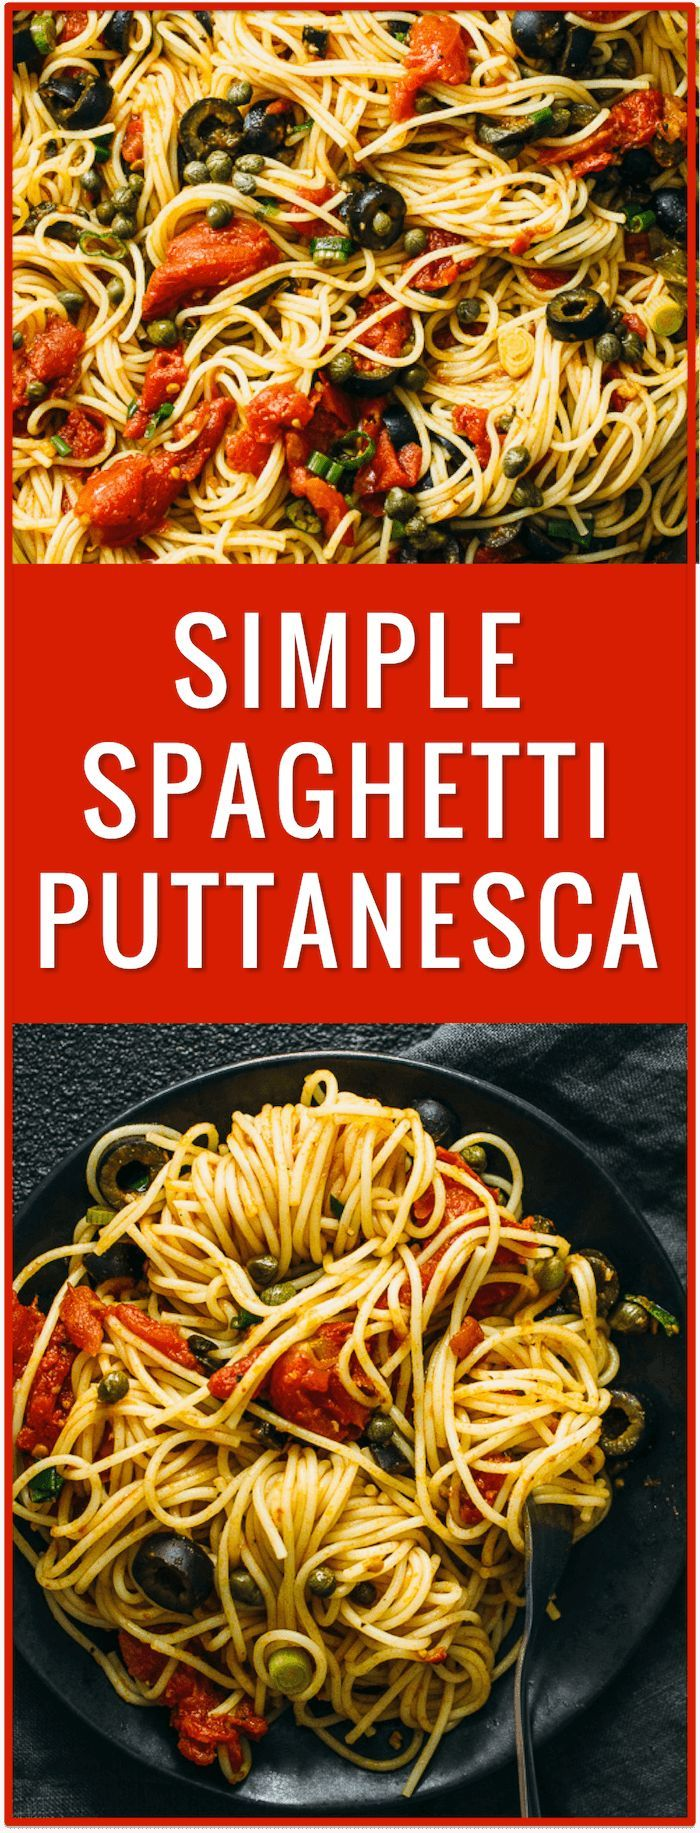 easy pasta dinner recipe, spaghetti puttanesca, spaghetti alla puttanesca, puttanesca sauce, noodles, angel hair, cold, hot, healthy, simple via /savory_tooth/